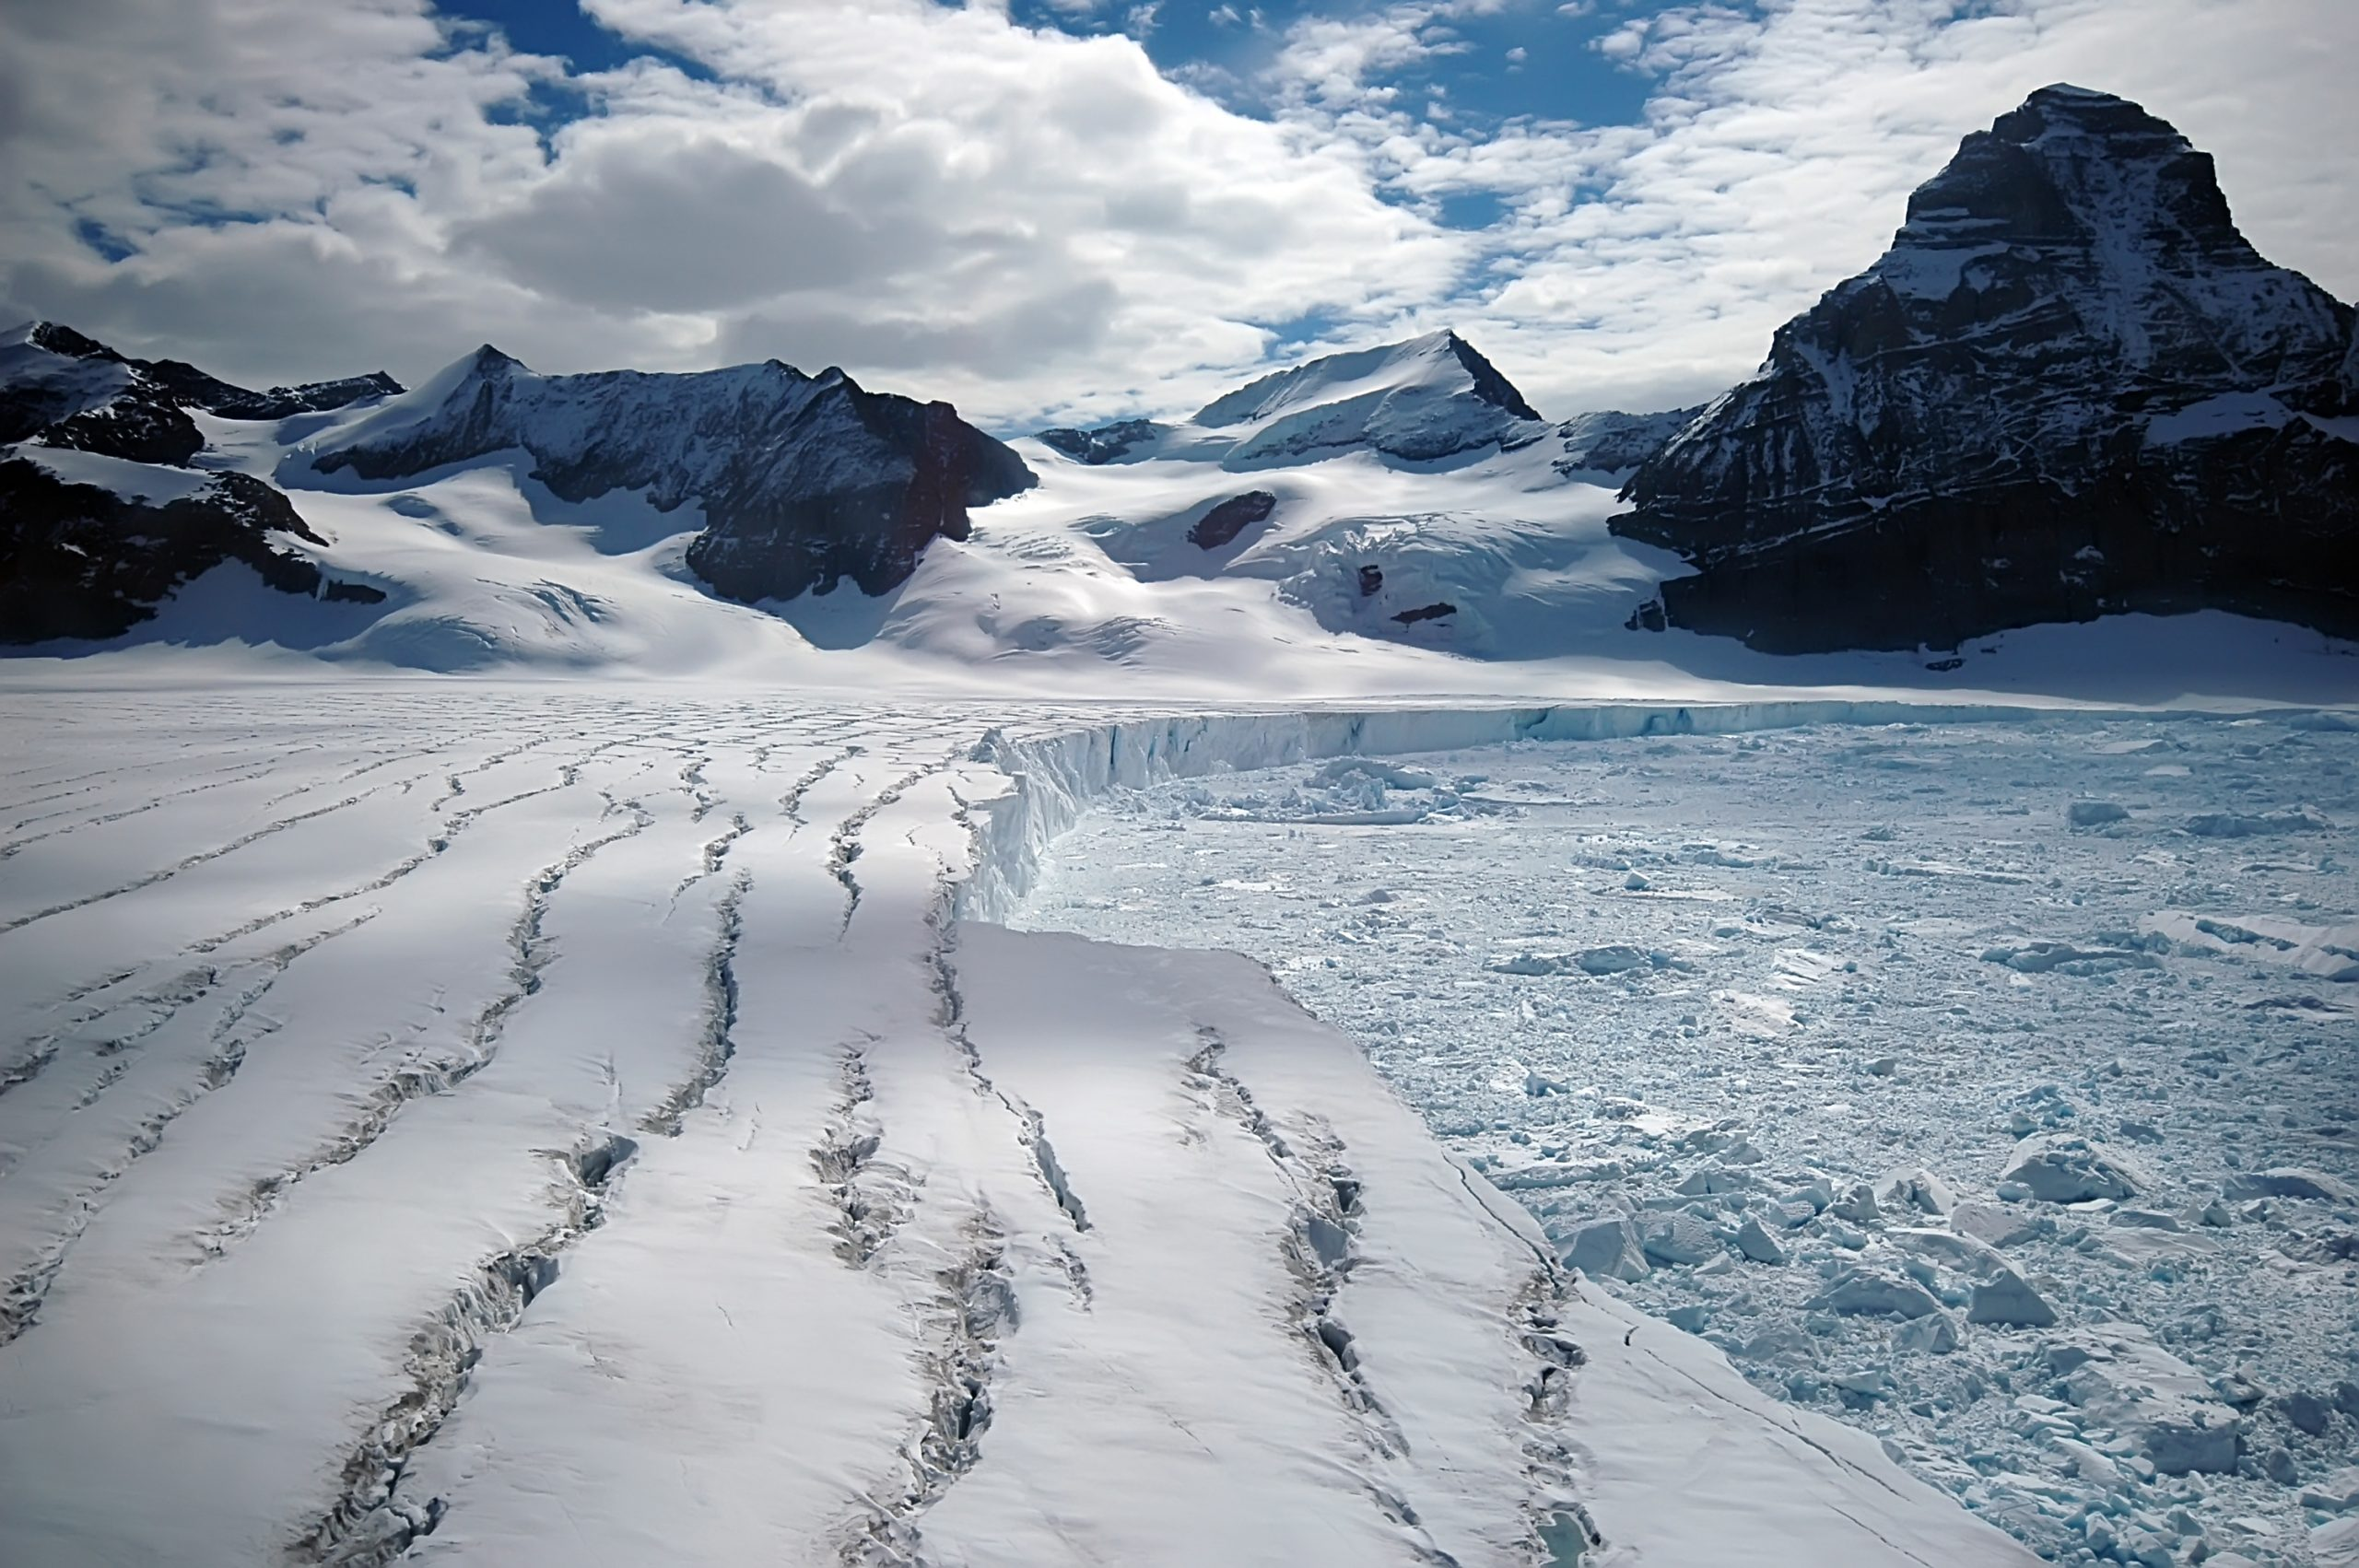 This Antarctic glacier is one of the remains of the once huge Larsen B ice shelf, which infamously collapsed in 2002 over the course of a single month. Such a large area of ice collapsing so quickly was an unprecedented event in scientific history. Photograph by Armin Rose / Shutterstock